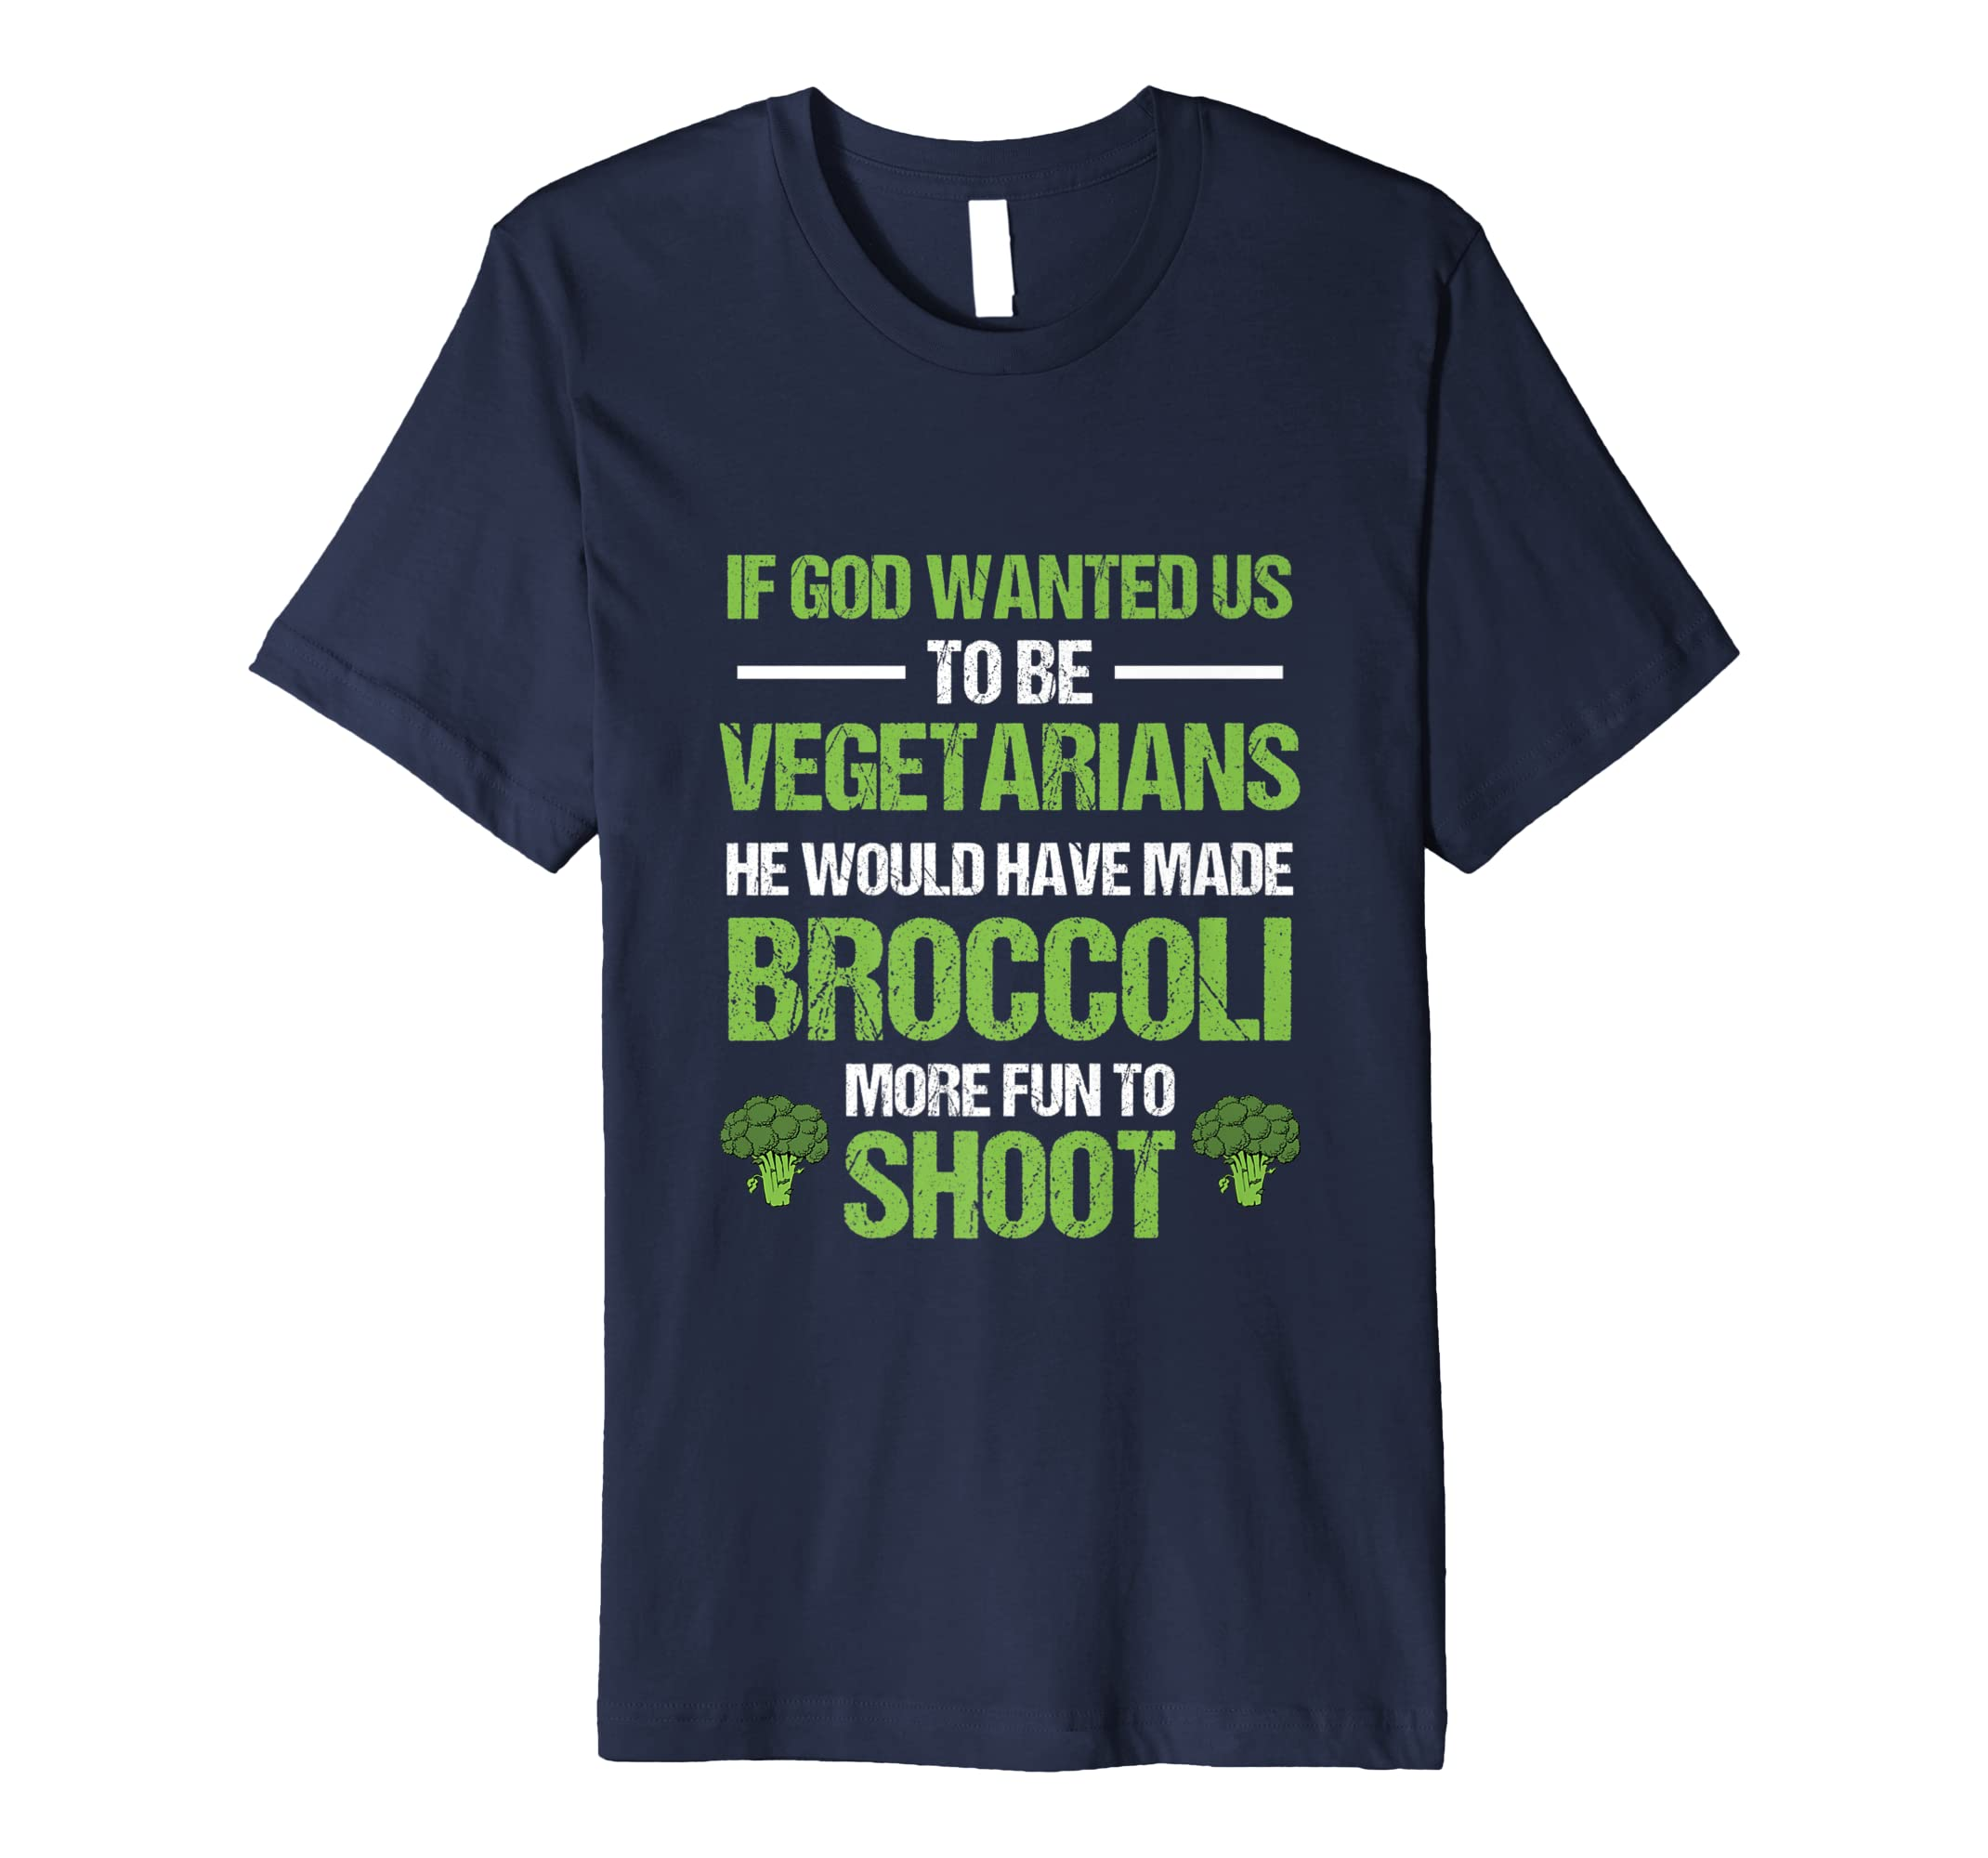 a6d00fb83 Amazon.com: Funny Hunting Lover Bow Rifle Deer Hunter Meat Eater Shirt:  Clothing